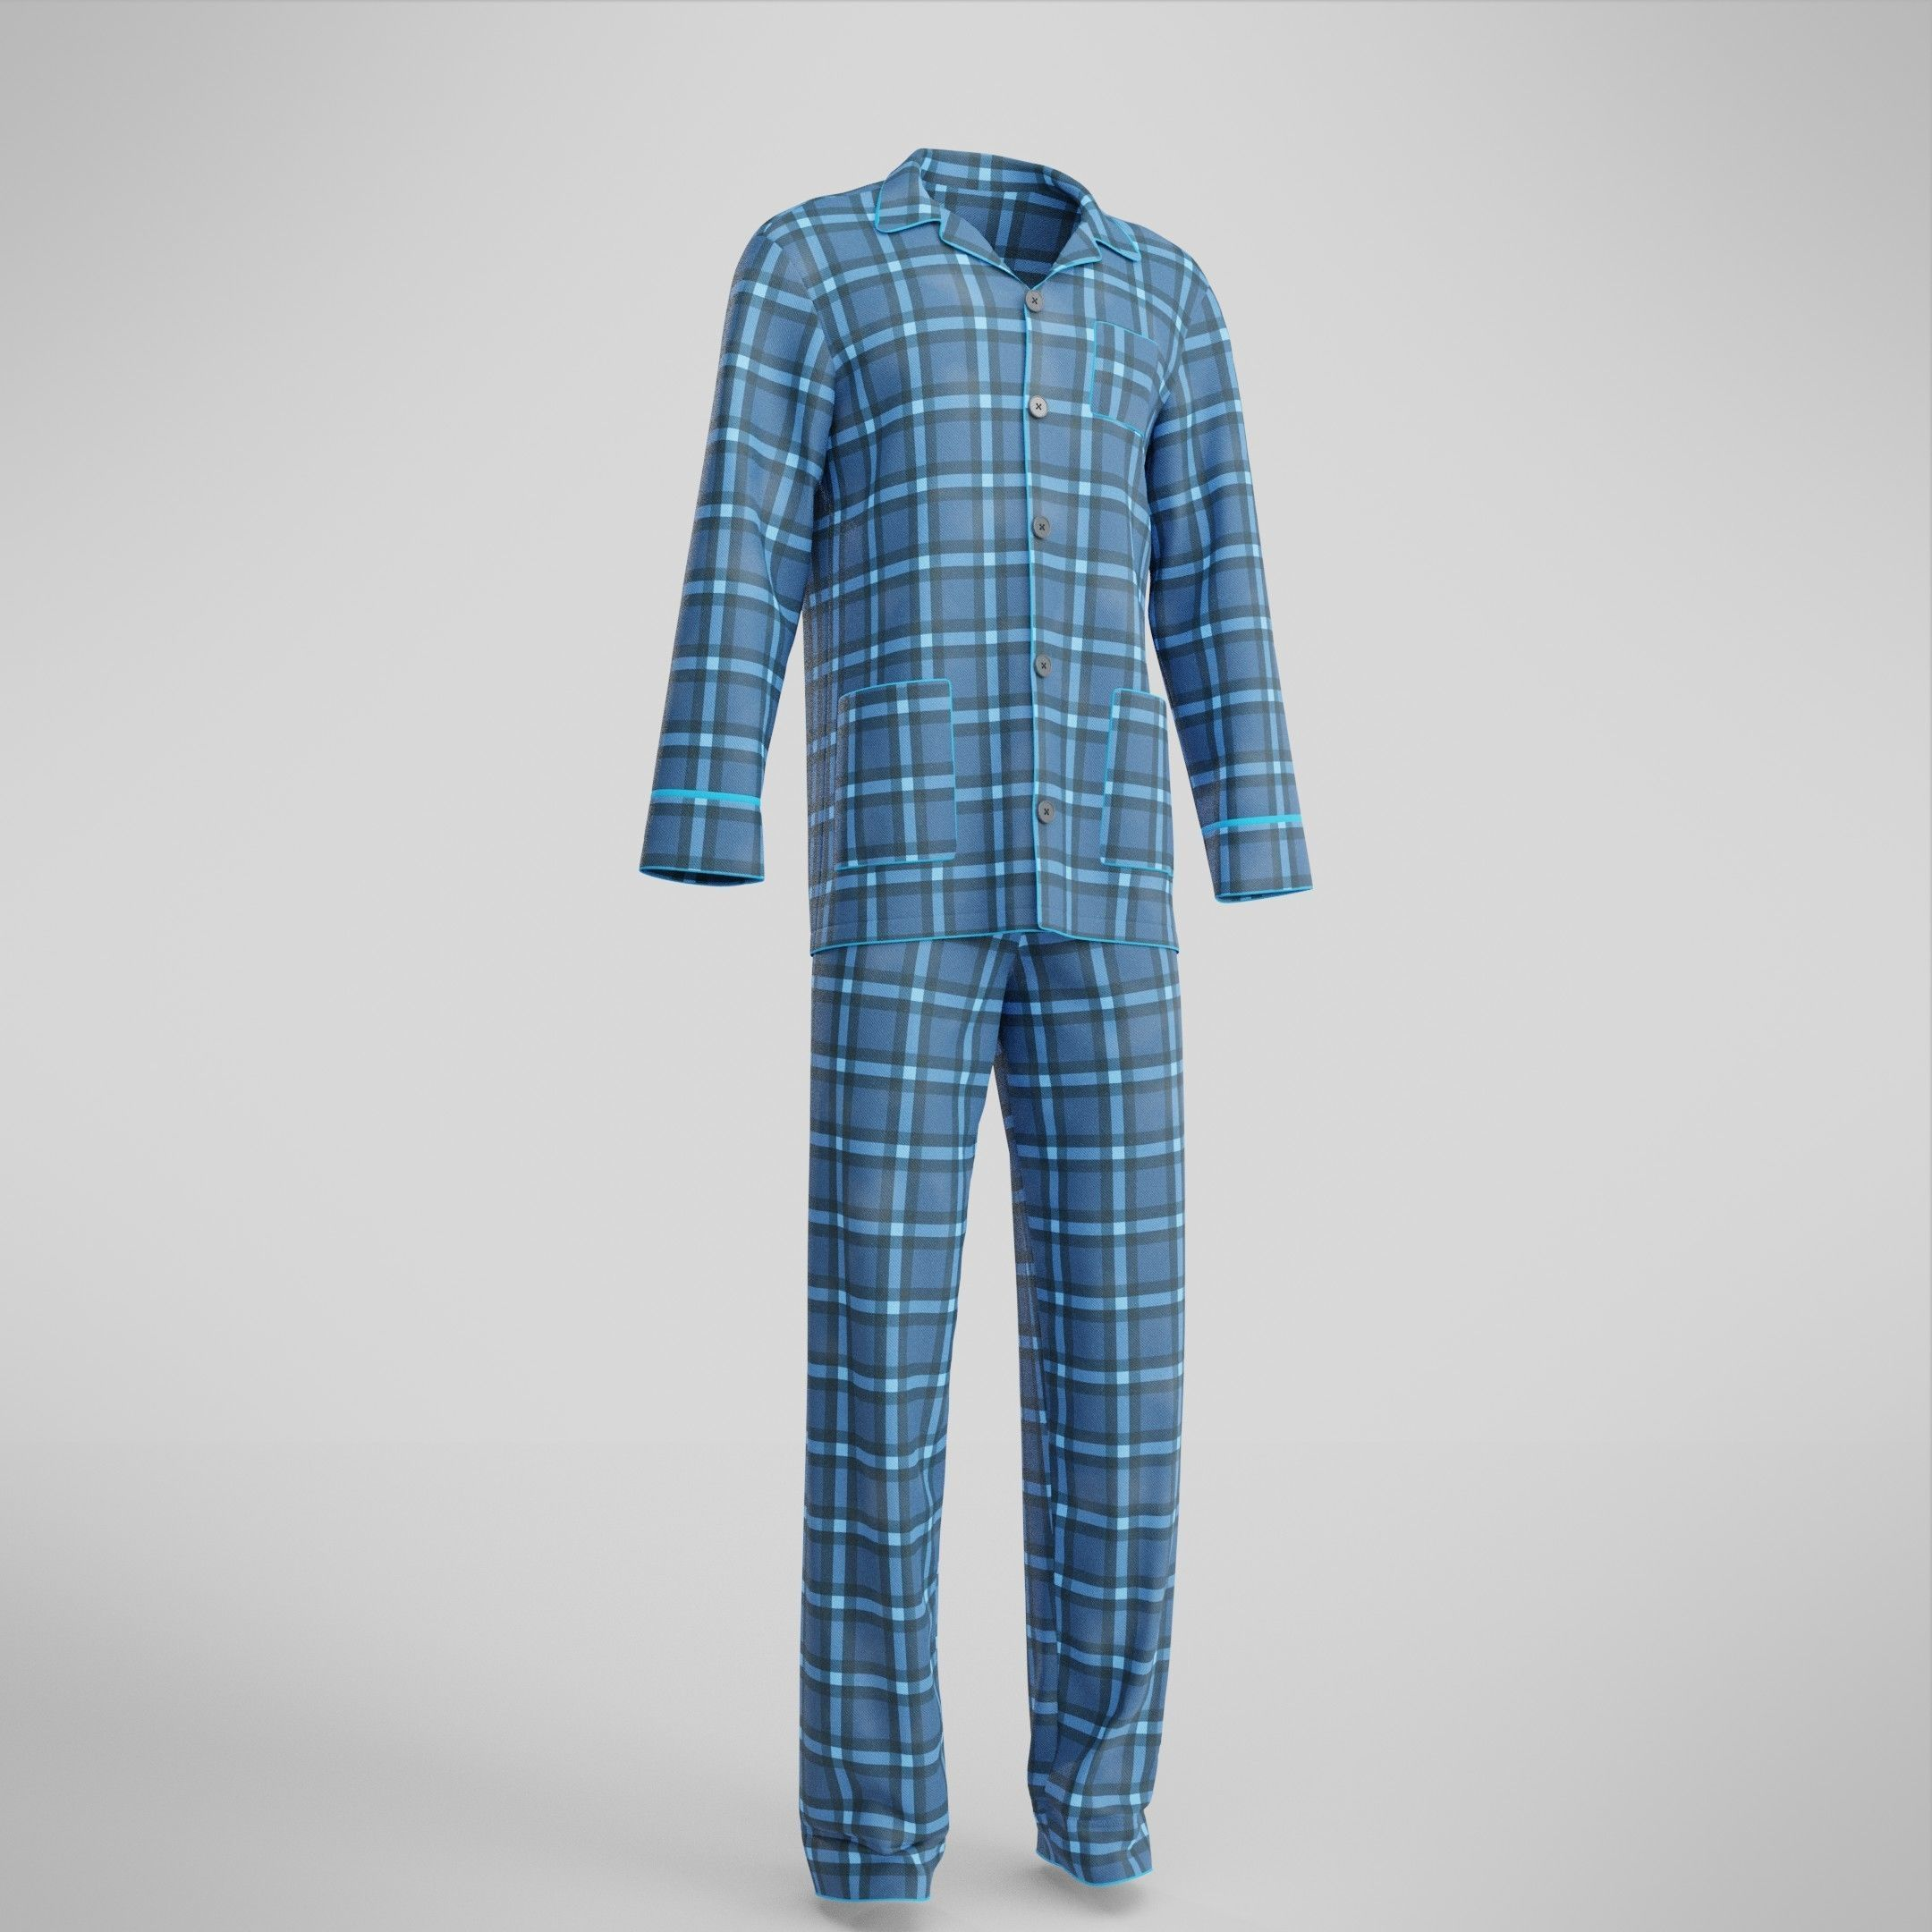 Male Pajamas